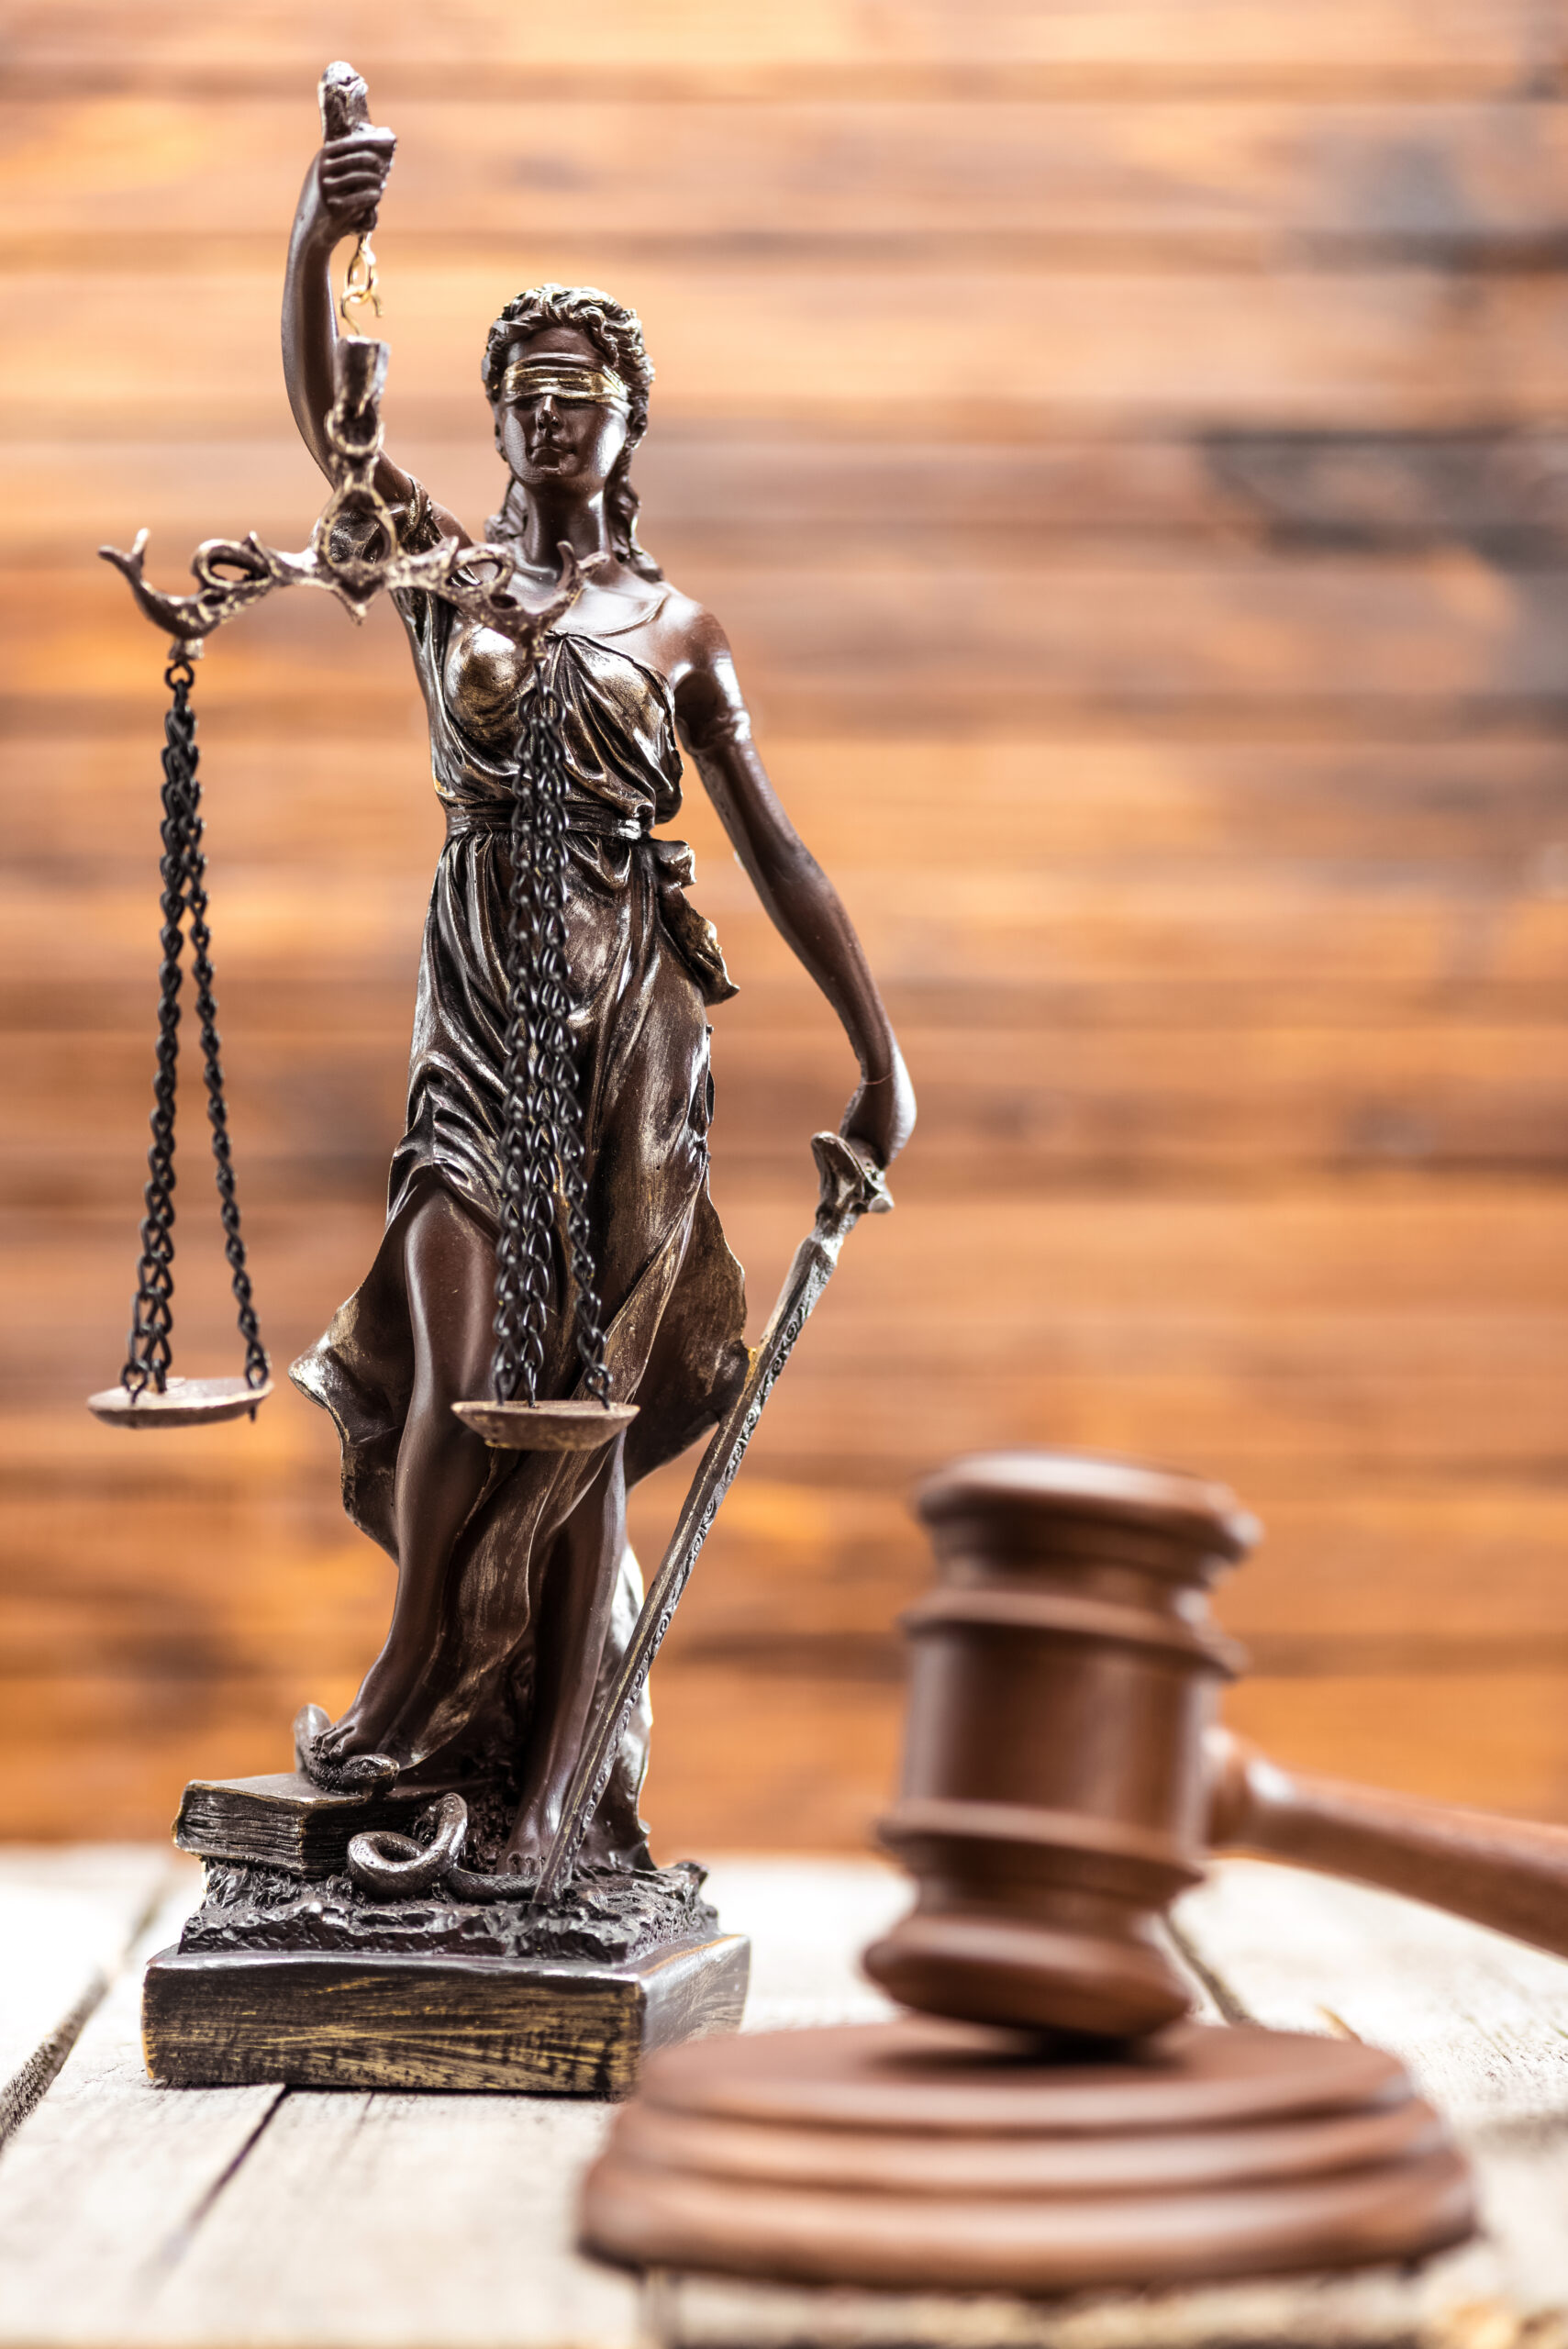 statue-of-lady-justice-and-mallet-on-wooden-table-HV8MLE5-scaled-1.jpg